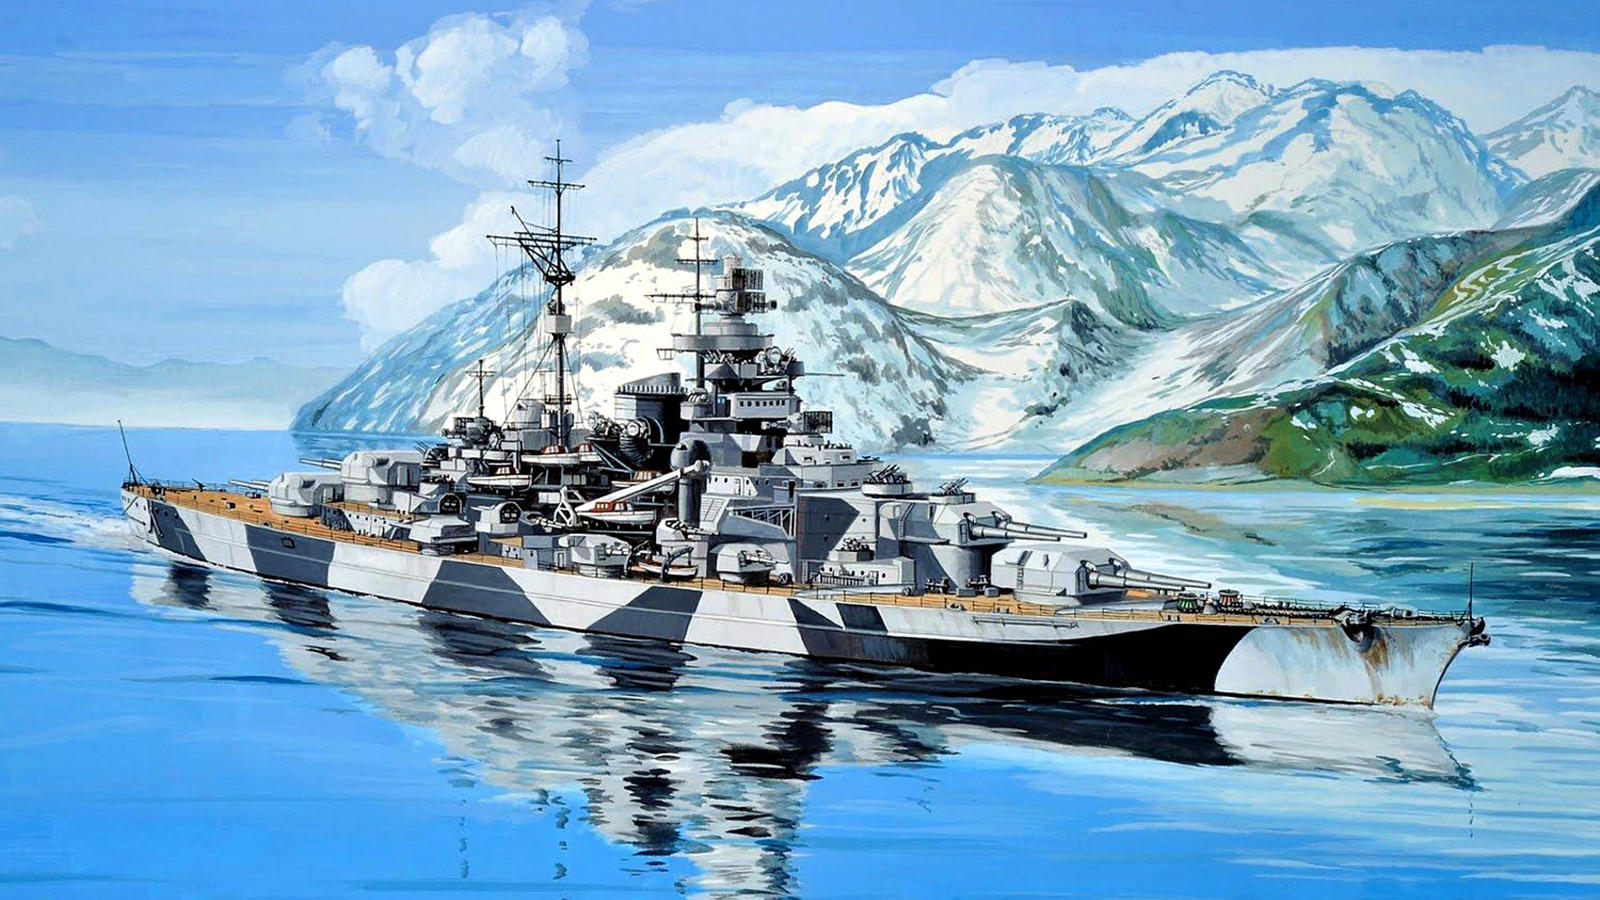 battleship tirpitz the lonely queen of the north by